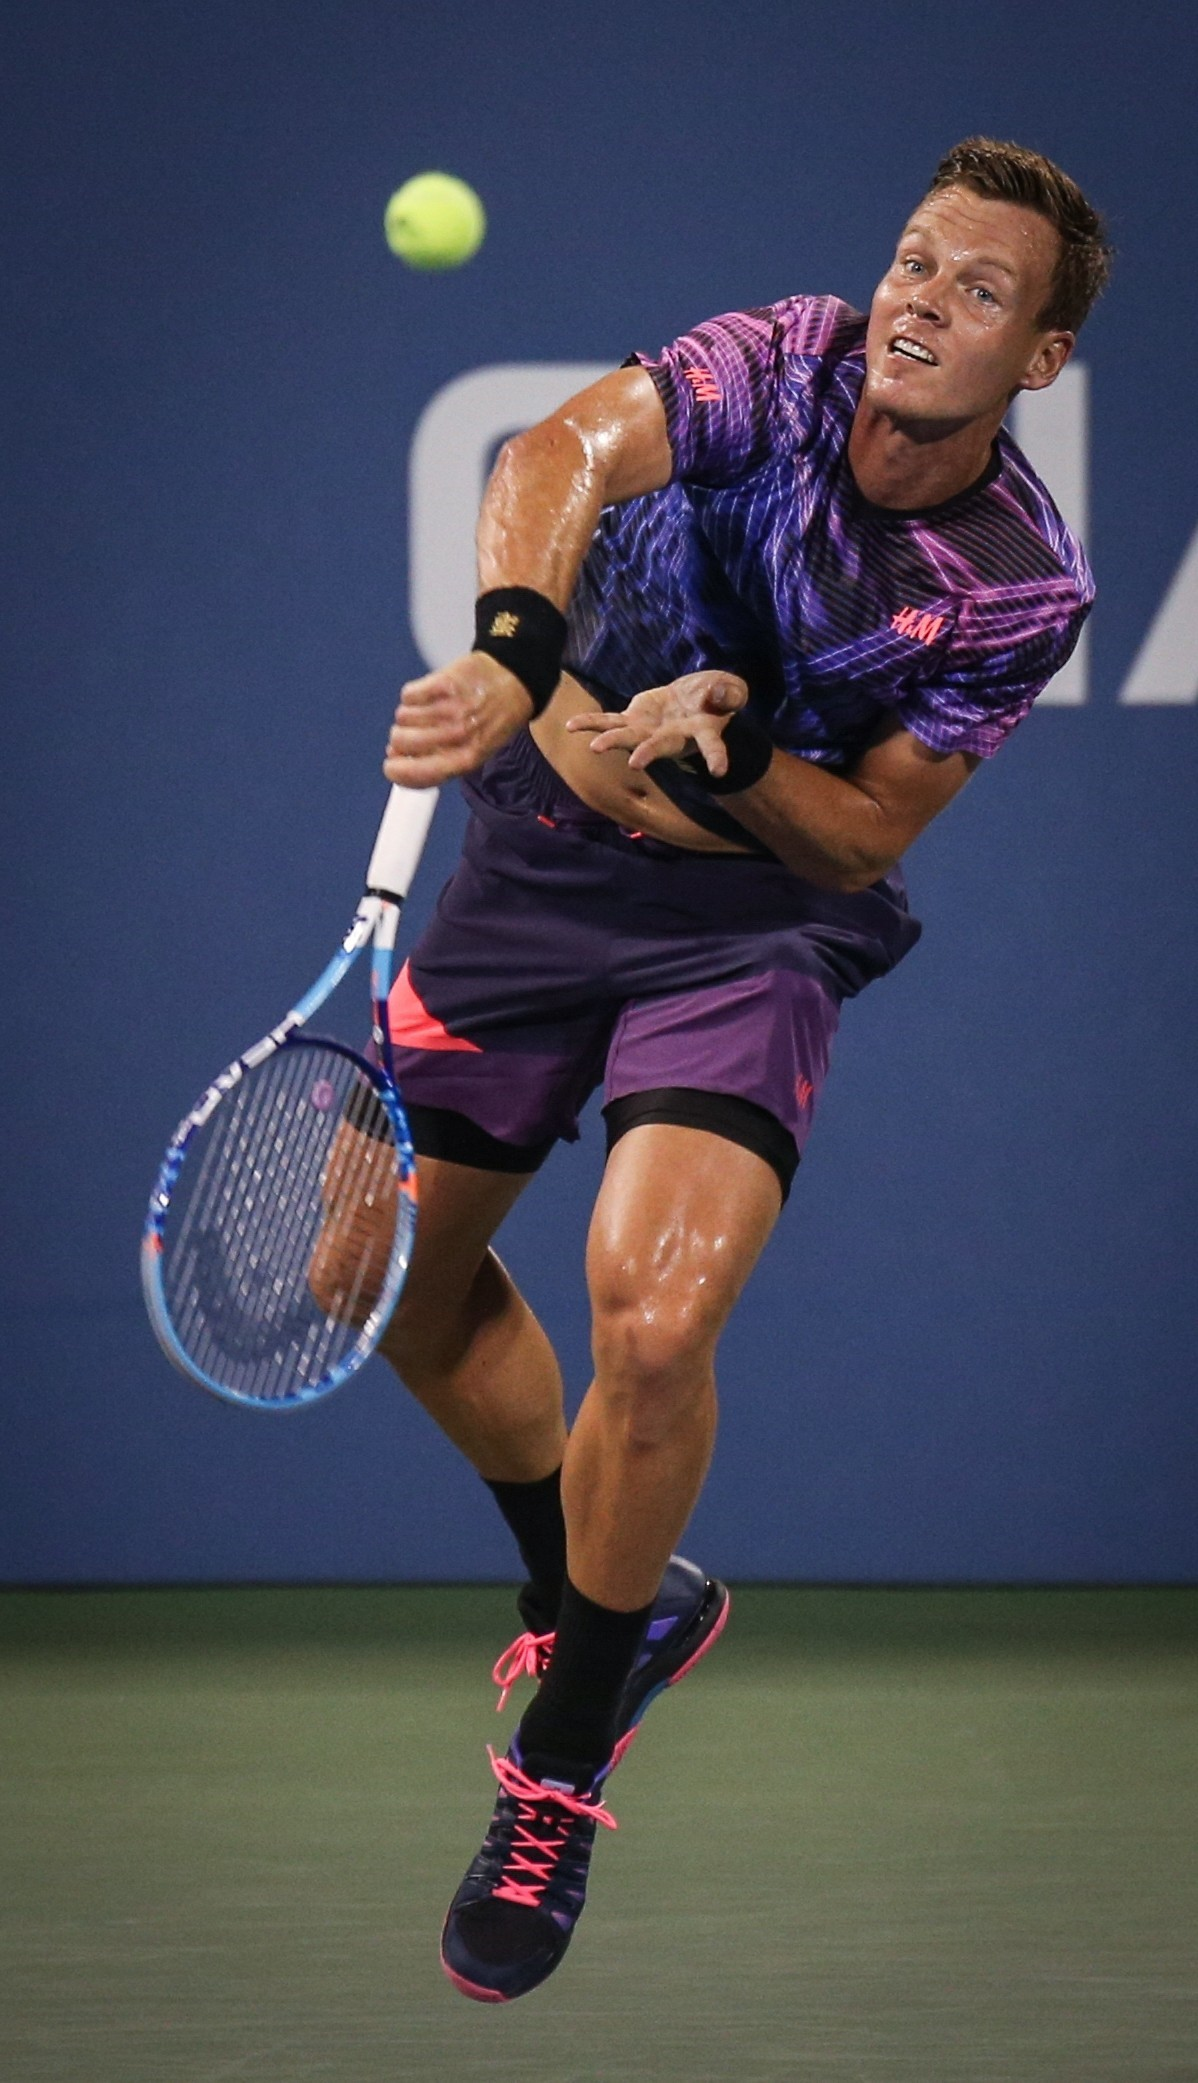 Tomas Berdych of the Czech Republic returns a shot against Richard Gasquet of France during their Men's Singles Fourth Round match on Day Eight of the 2015 US Open on Sept. 7, 2015.